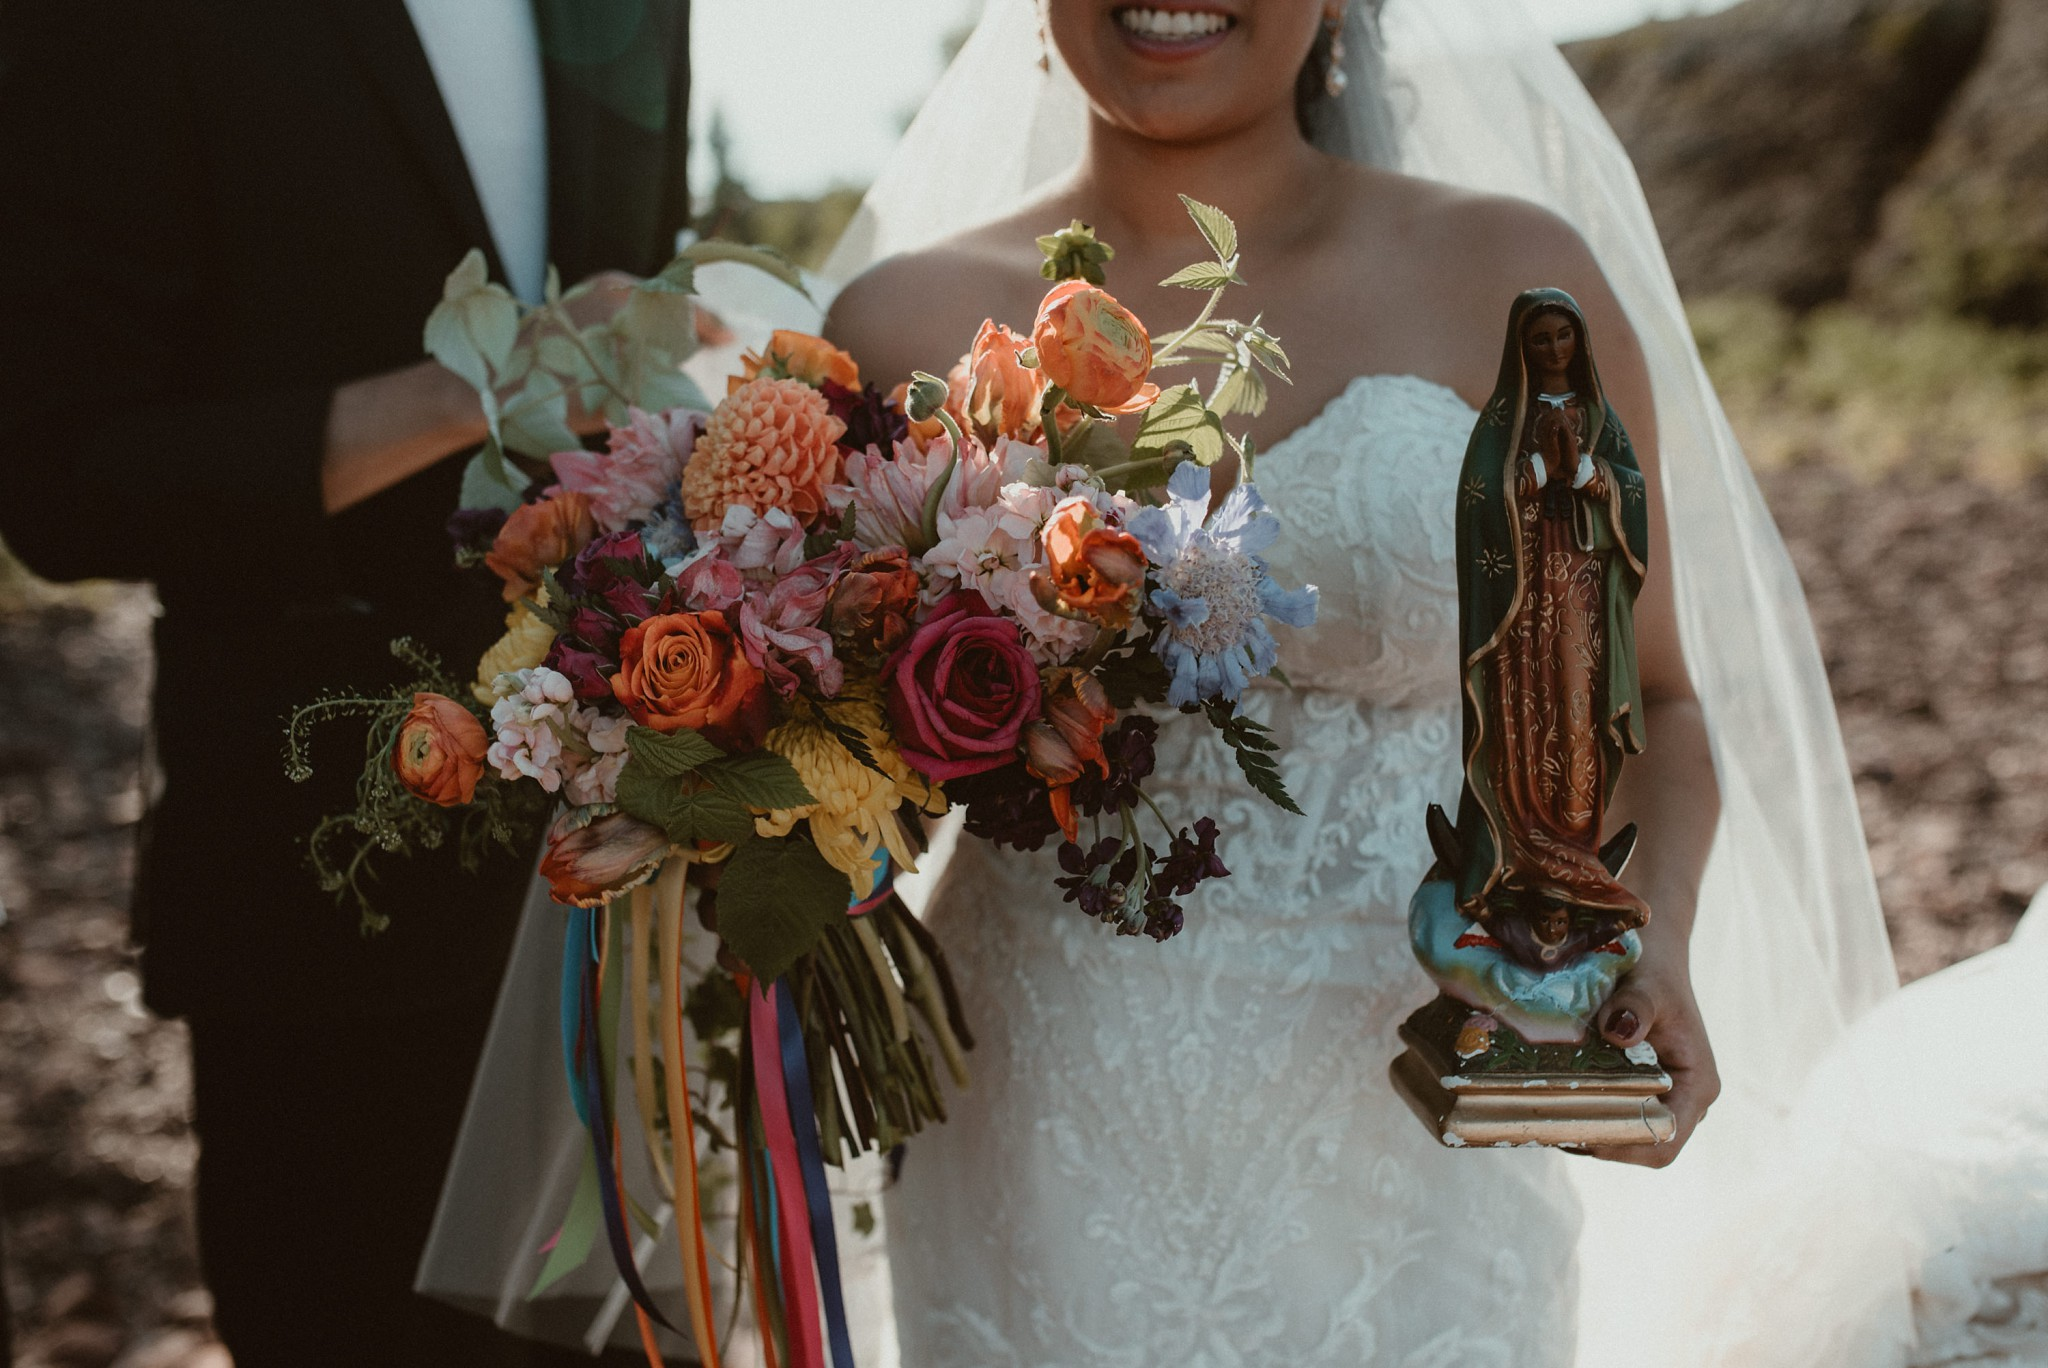 The bride holding her bouquet and a statue of Mary